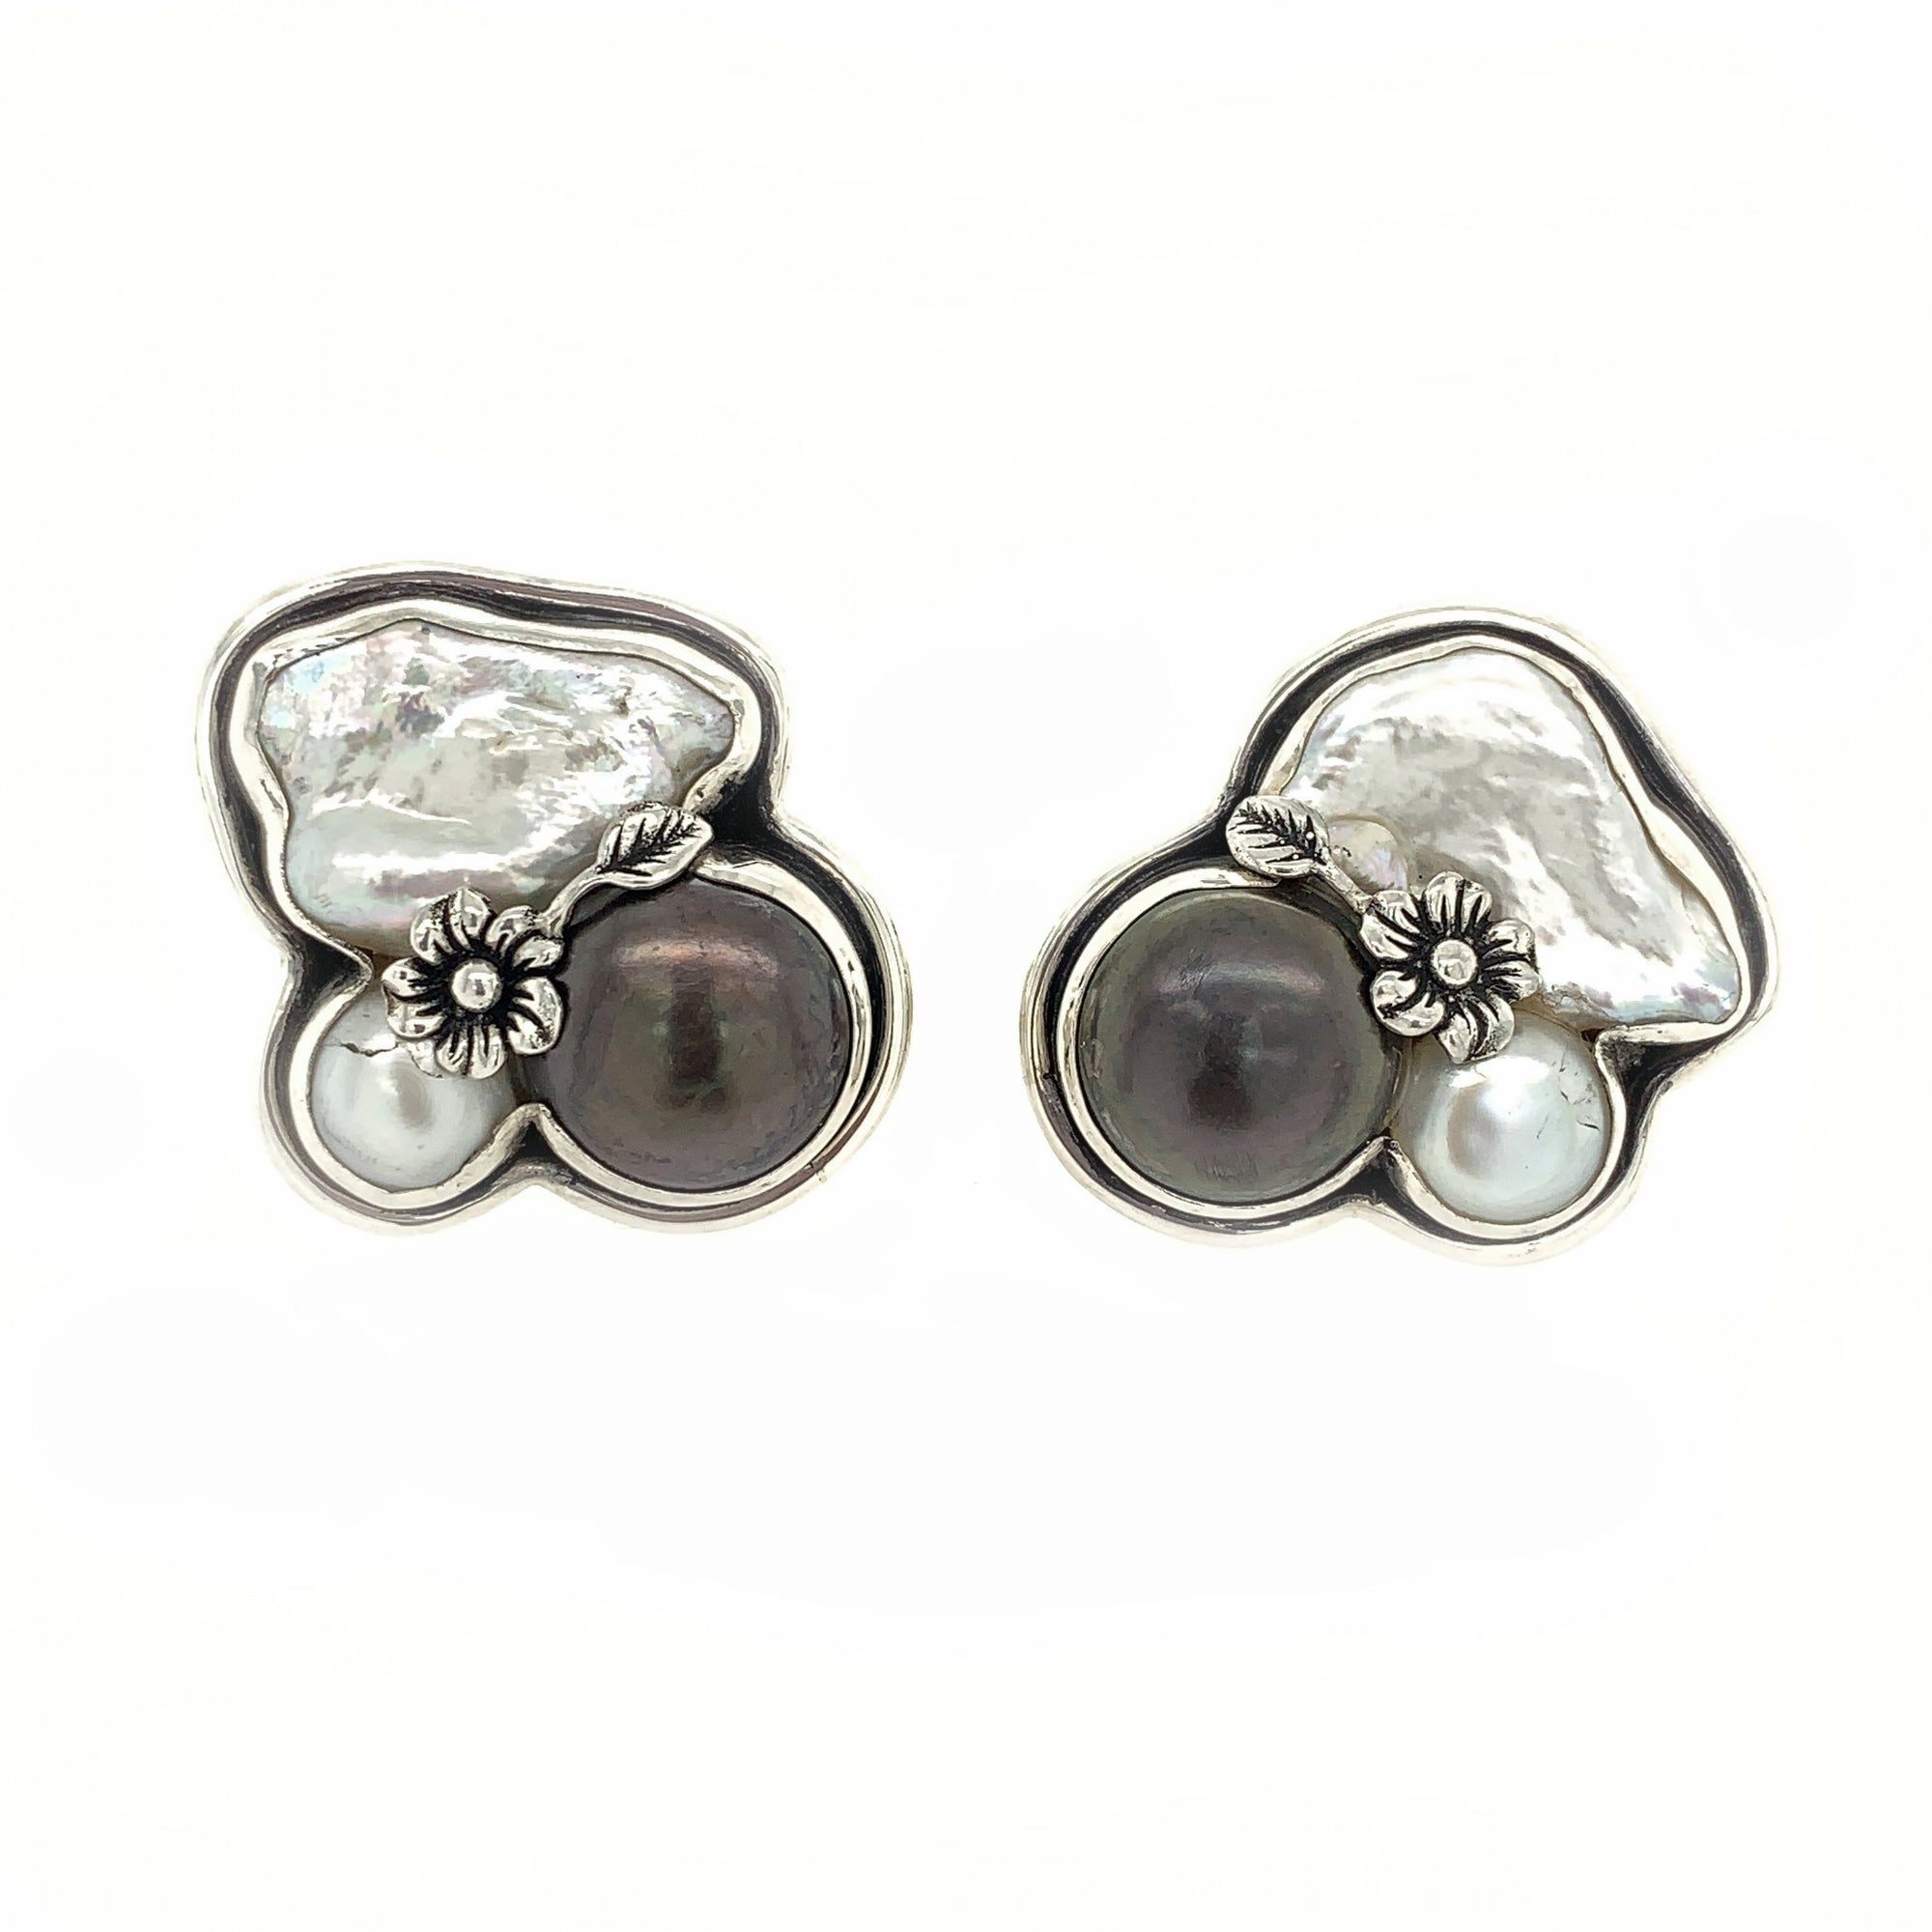 Baroque Pearl Earrings - Qinti - The Peruvian Shop